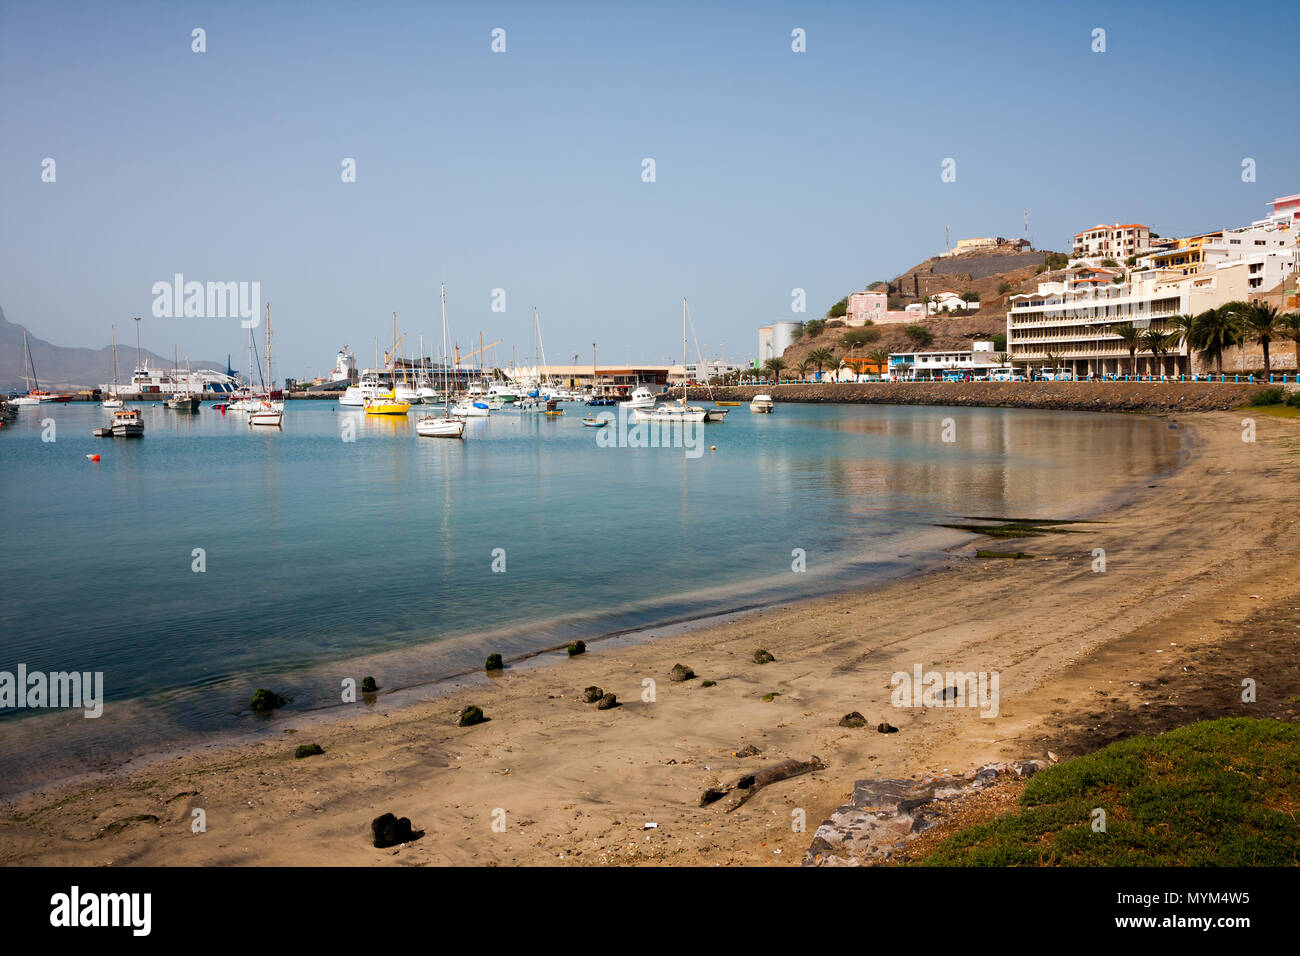 MINDELO, CAPE VERDE - DECEMBER 07, 2015: Boats and yachts in Marina of Sao Vicente island. Visible Fortim do Rei and maritime port agency AMP Stock Photo